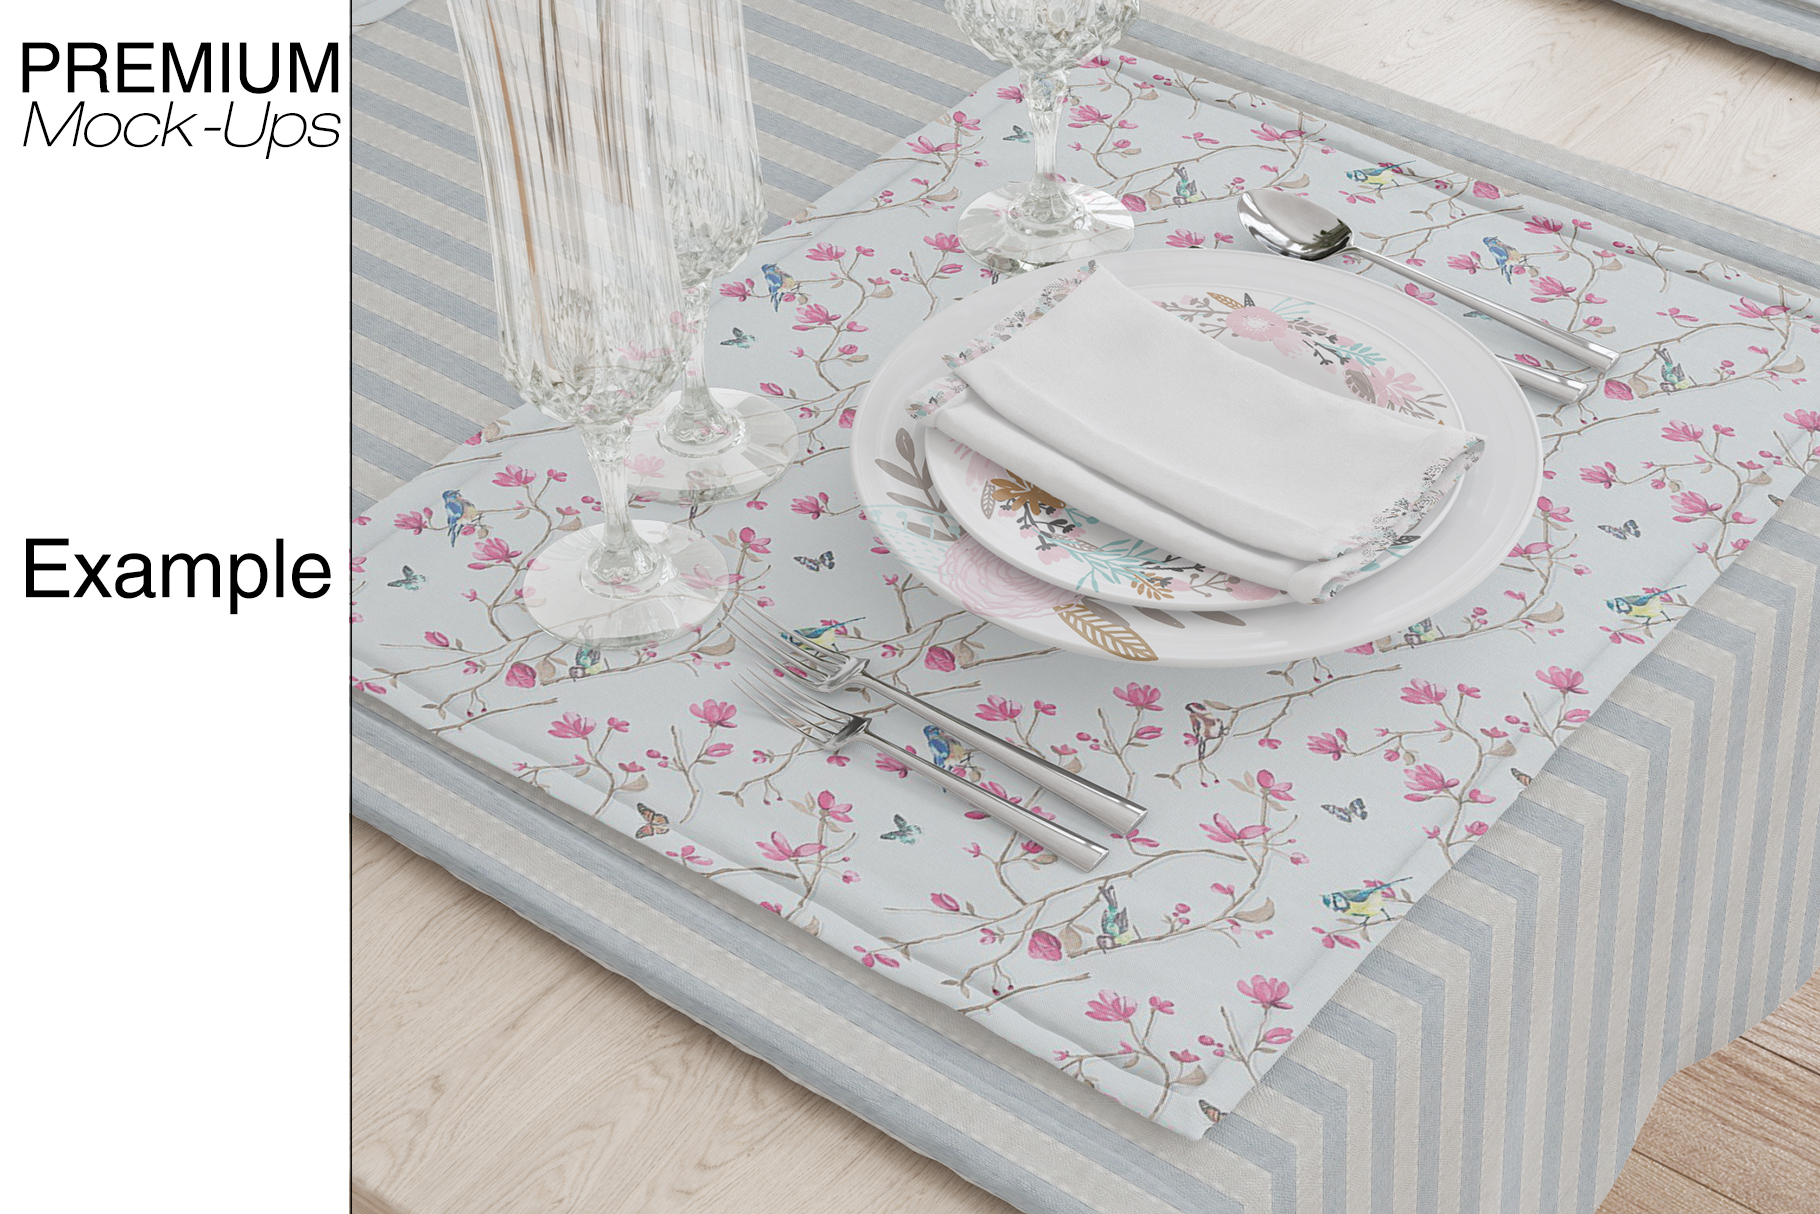 Tablecloth, Runner, Napkins & Plates example image 6